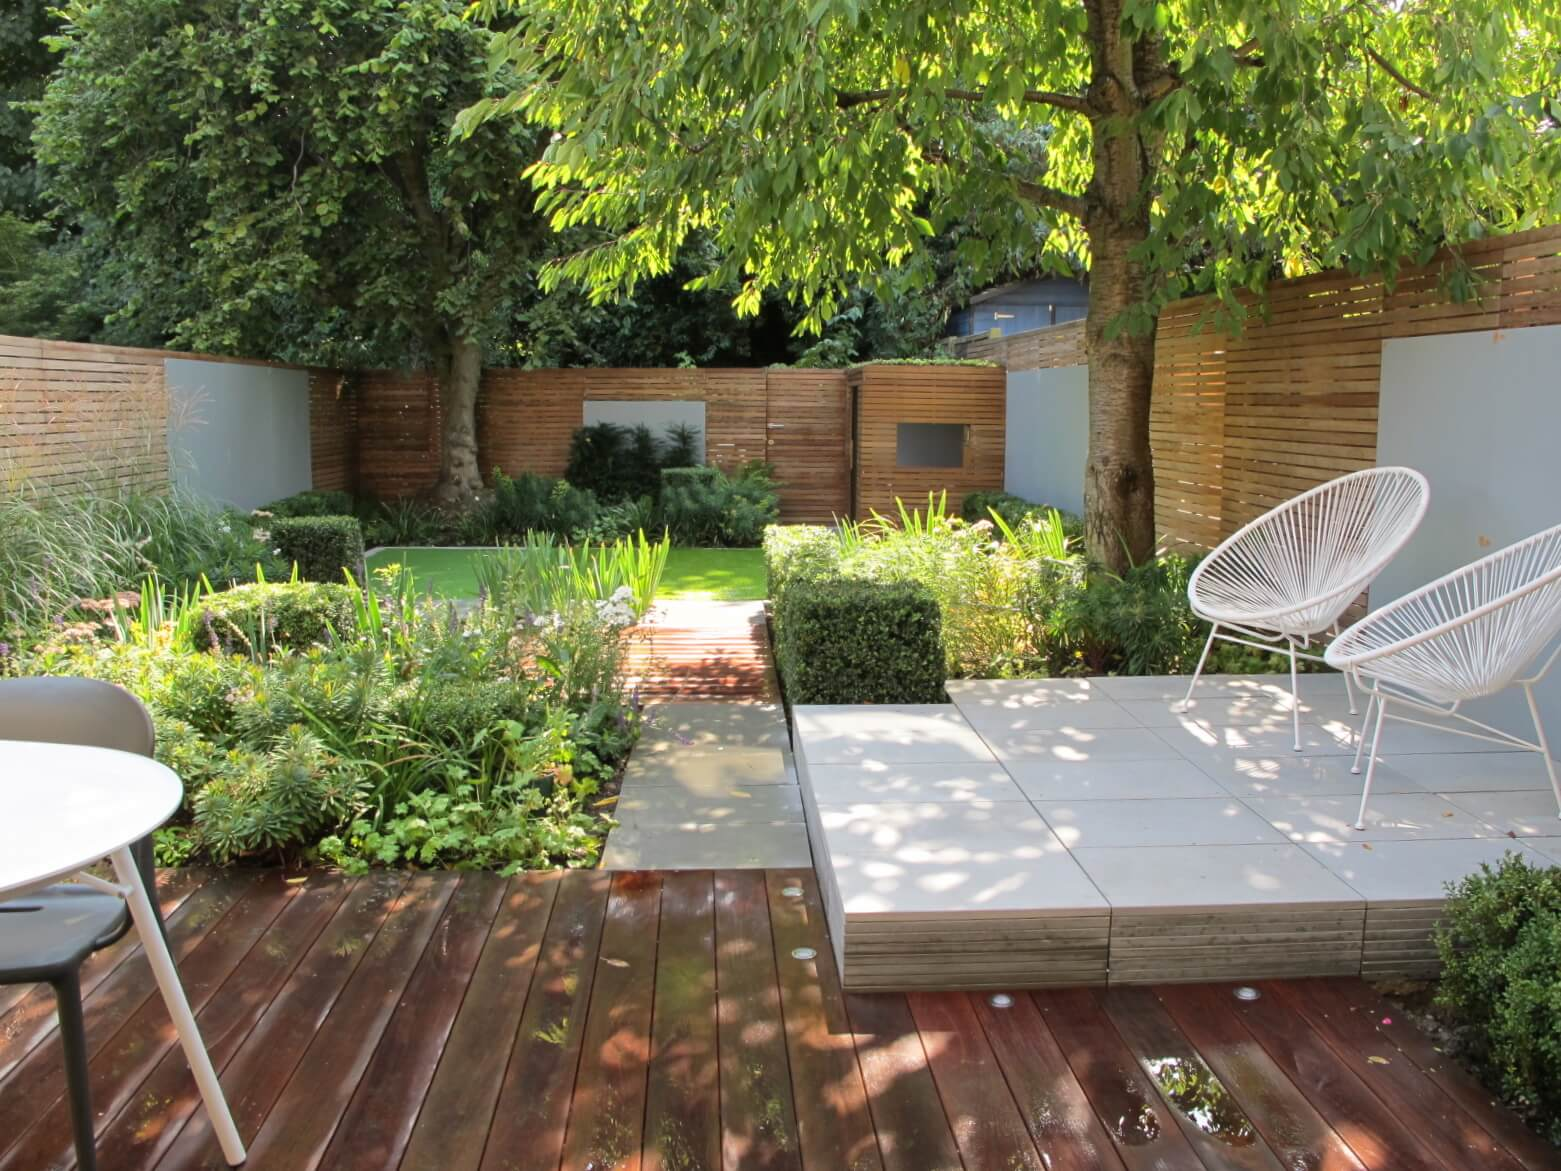 21 Best Garden Designs For Your Courtyard on Best Backyard Patio Designs id=33613